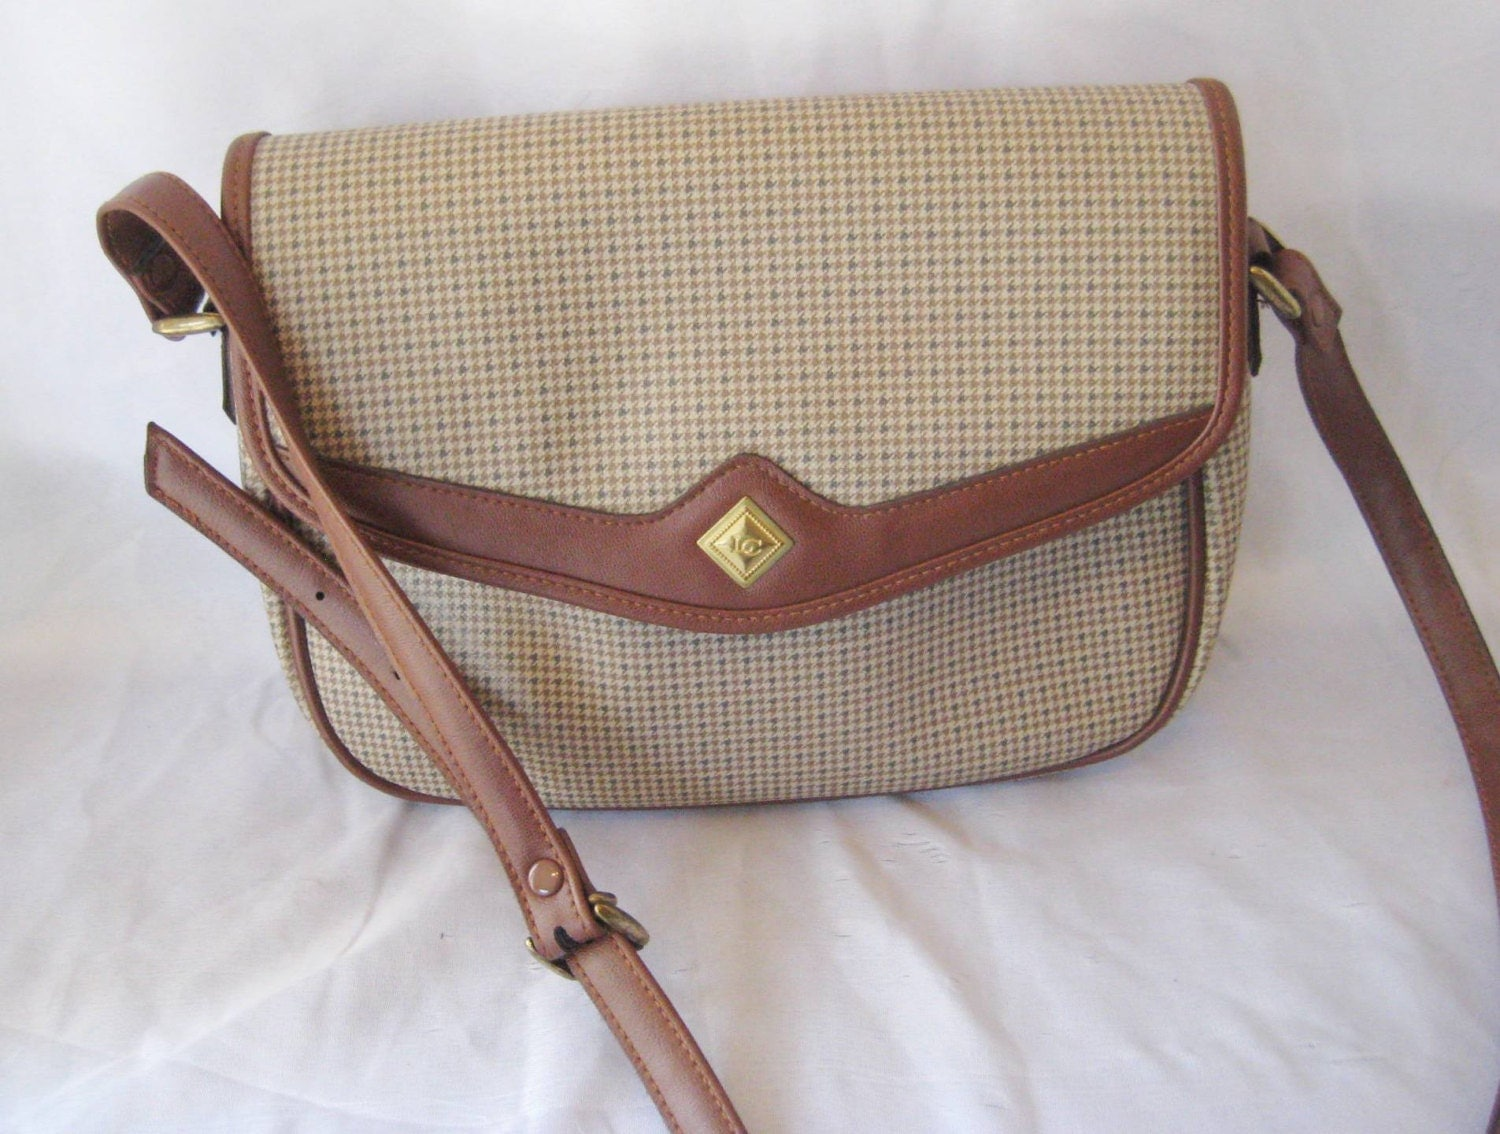 vintage liz claiborne crossbody bag bags and purses 80s